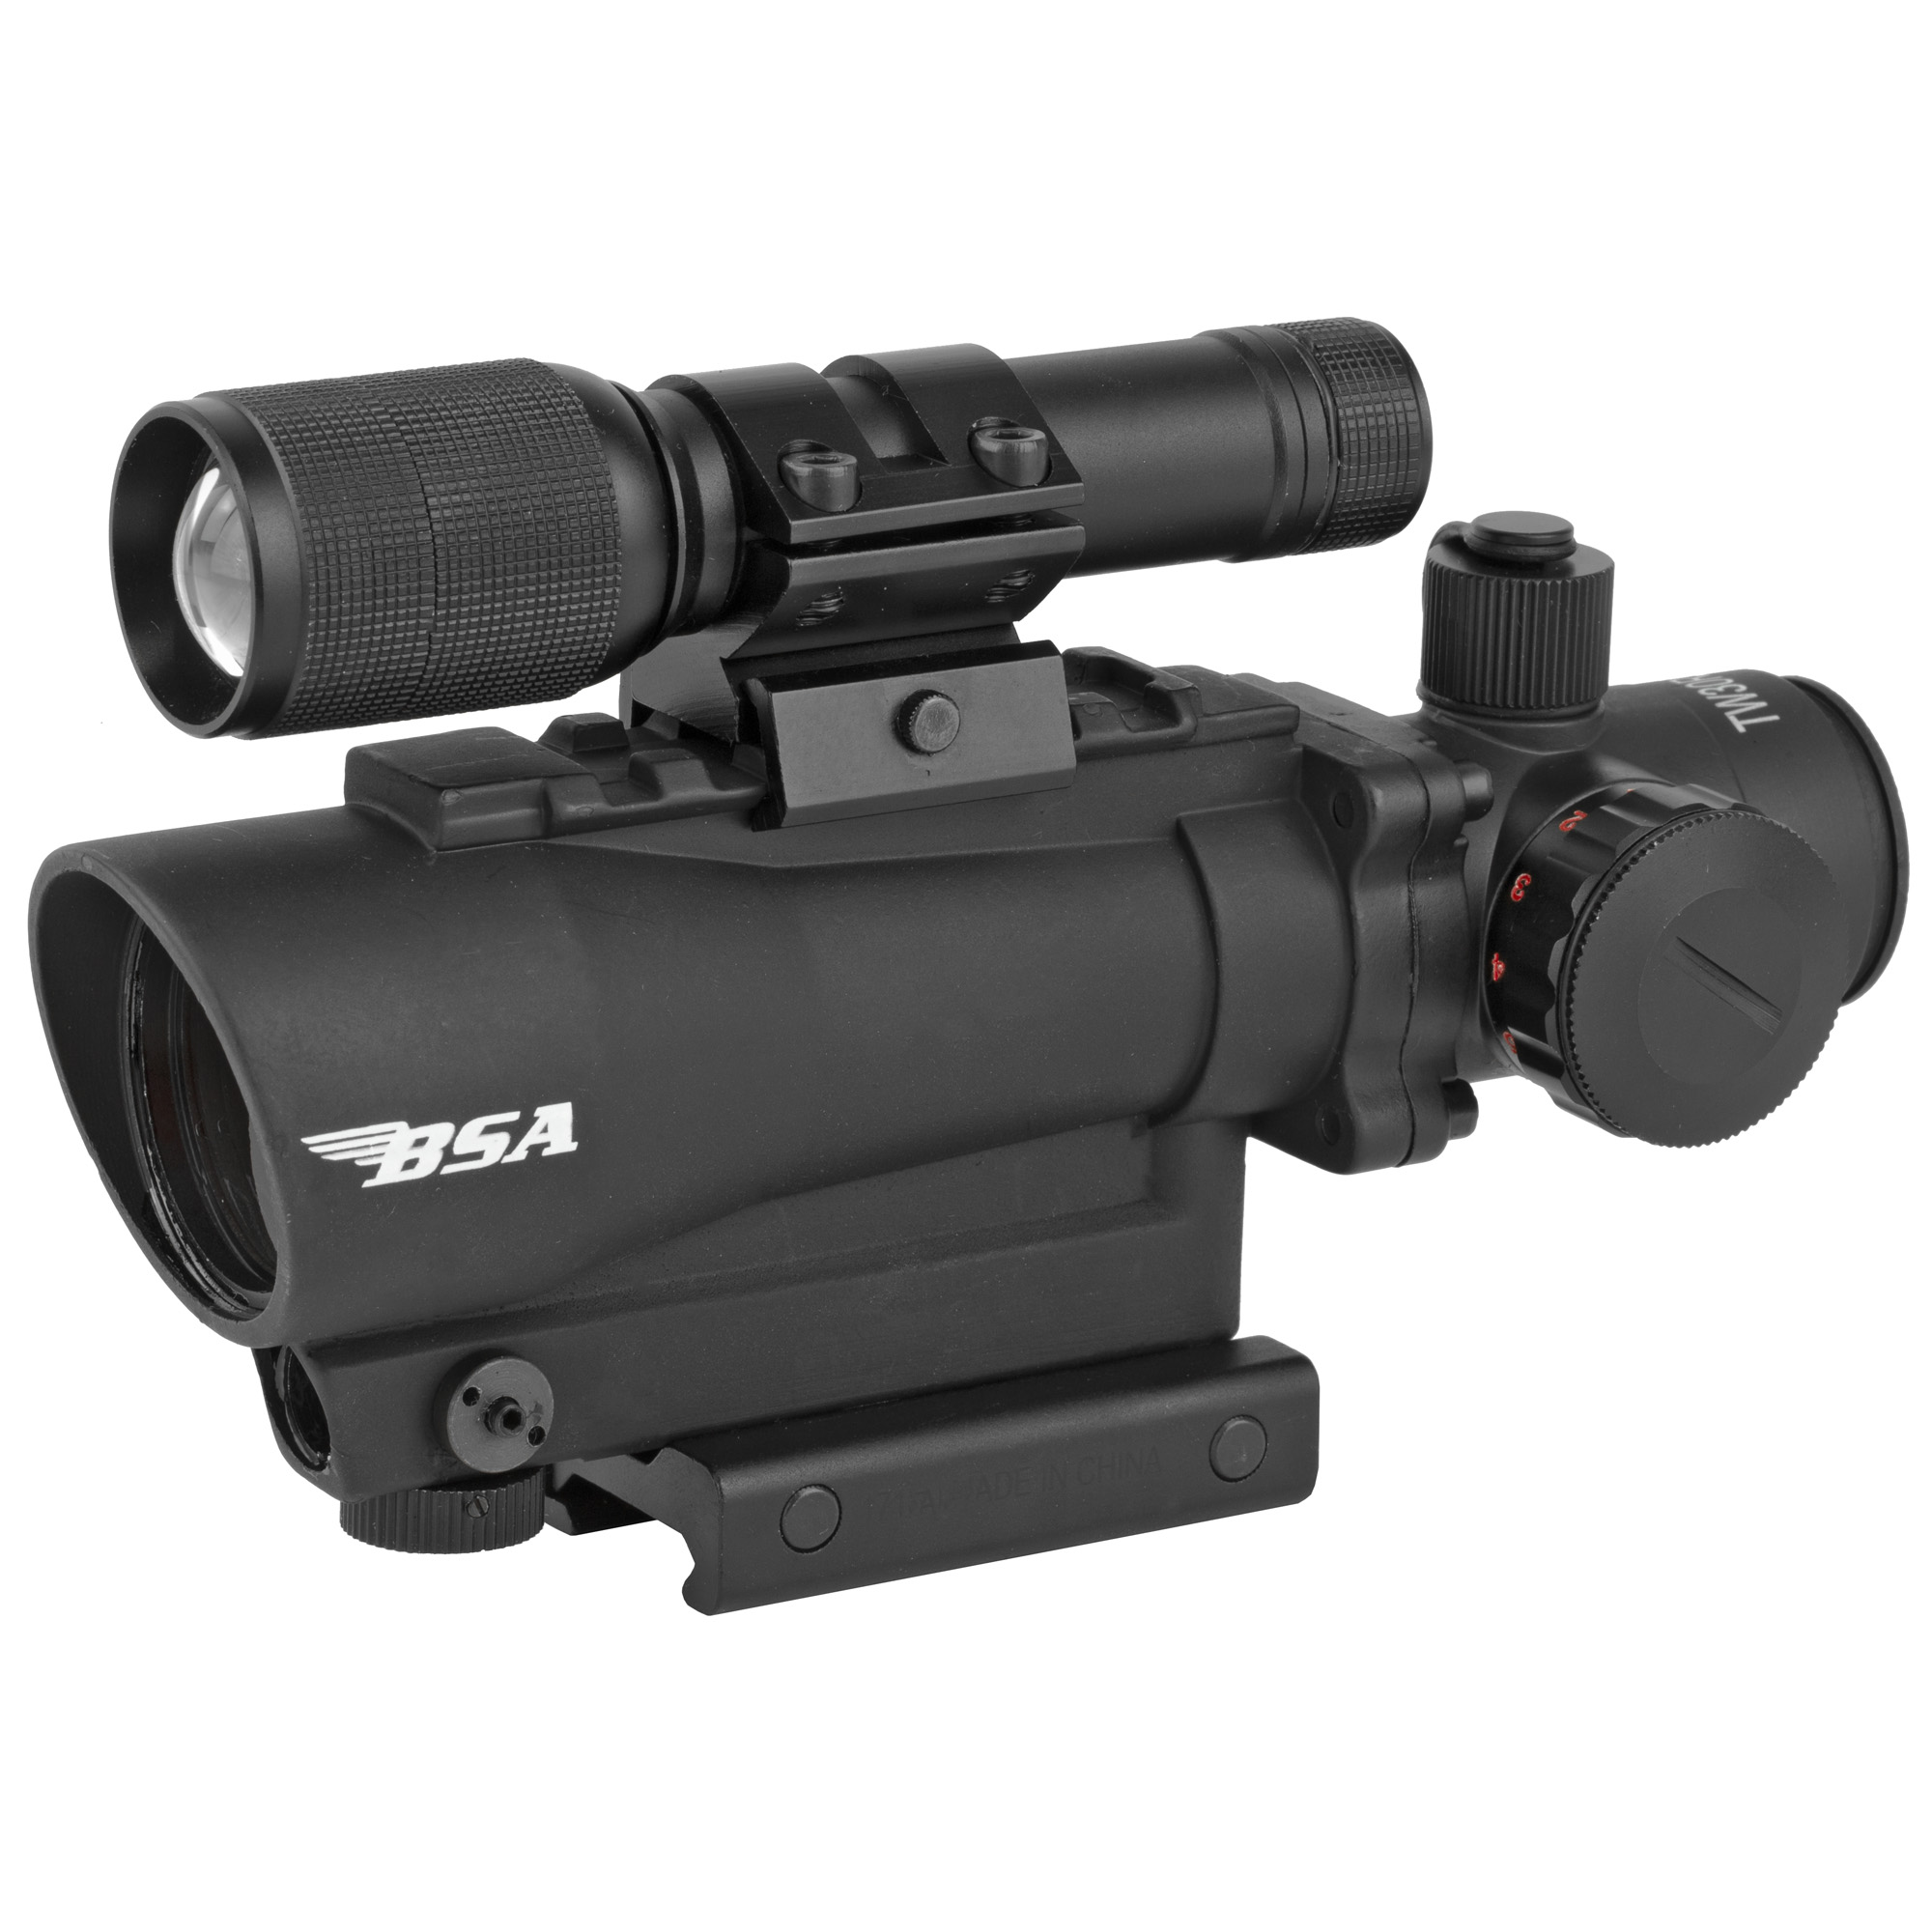 """The Tactical Weapon Series products are engineered specifically for use with tactical style firearms and designed to handle the most demanding tasks that one faces in tactical situations. For optimal accuracy"""" the TW30RDL red dot scope is equipped with an integrated 650 nm red laser sight"""" easy One-Piece mount and rubber eye guard. Model comes with attachable 140 Lumen LED flashlight."""